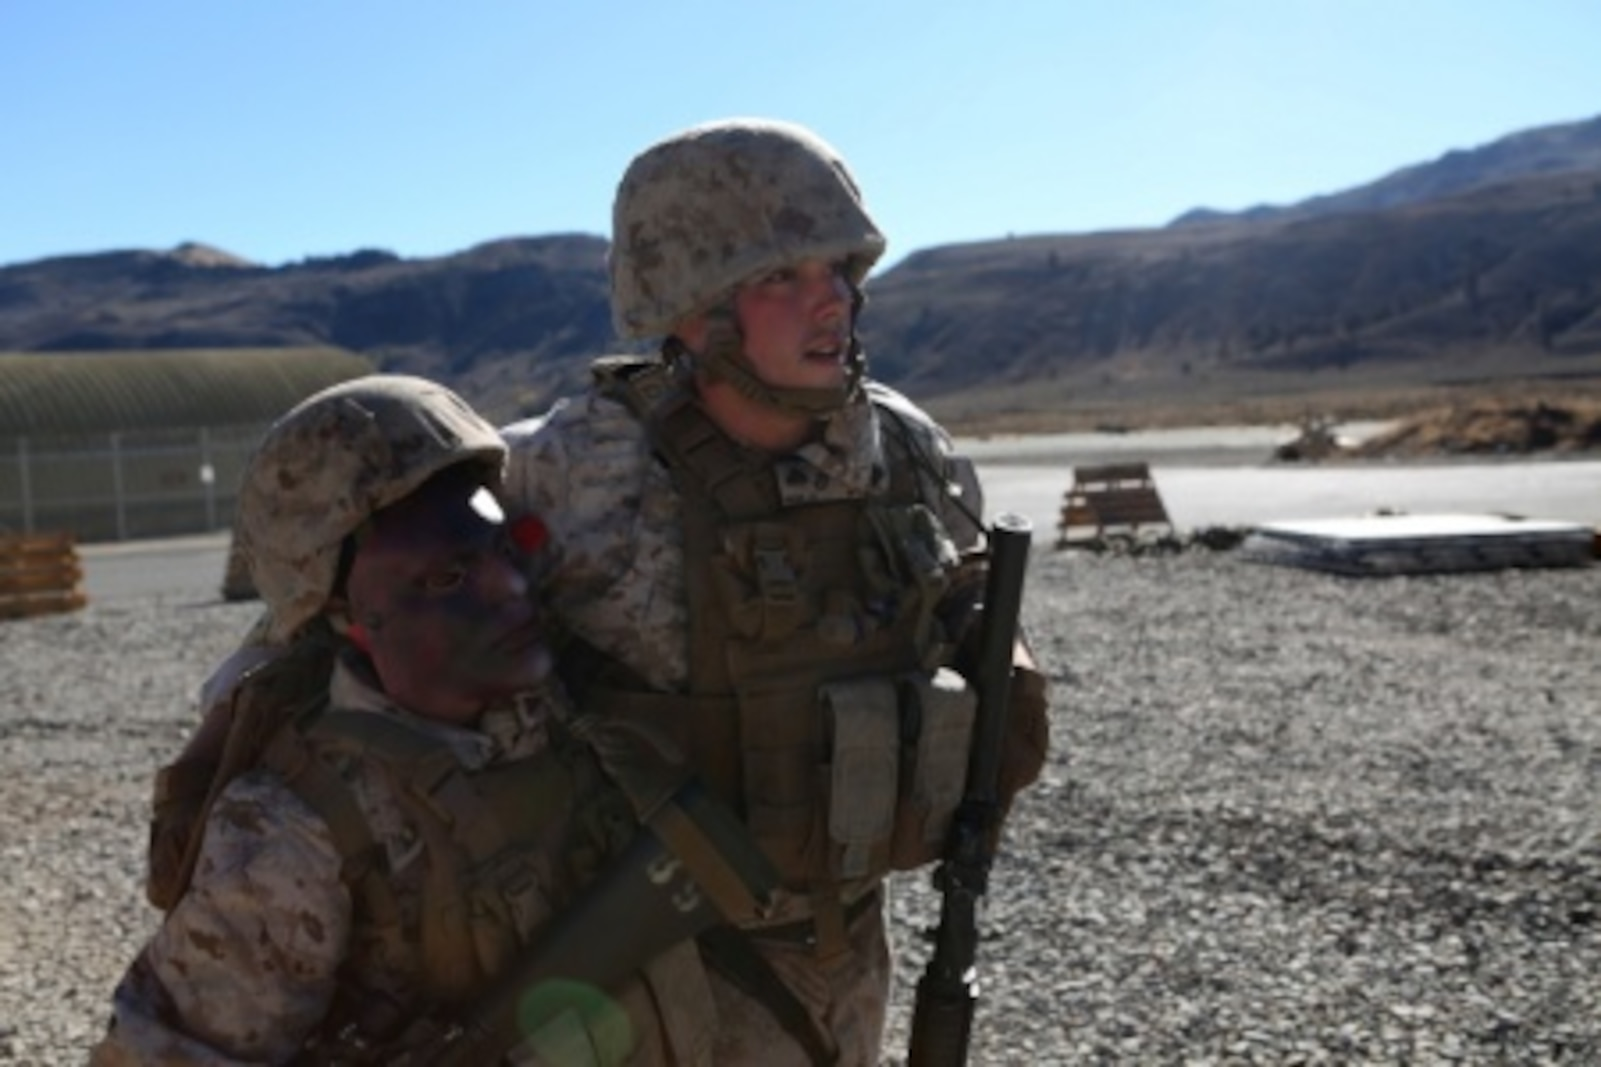 Cpl. James Negri, combat engineer, Combat Logistics Battalion 11, 1st Marine Logistics Group, helps a casualty get to safety after a simulated suicide bomber attack during Mountain Exercise 6-15 at Marine Corps Mountain Warfare Training Center, Bridgeport, Calif., Oct. 25, 2015. Engineer Platoon conducted two consecutive days of security patrols to ensure the safety of the base camp and was confronted with the challenge of a mass casualty event at the end of their patrol.